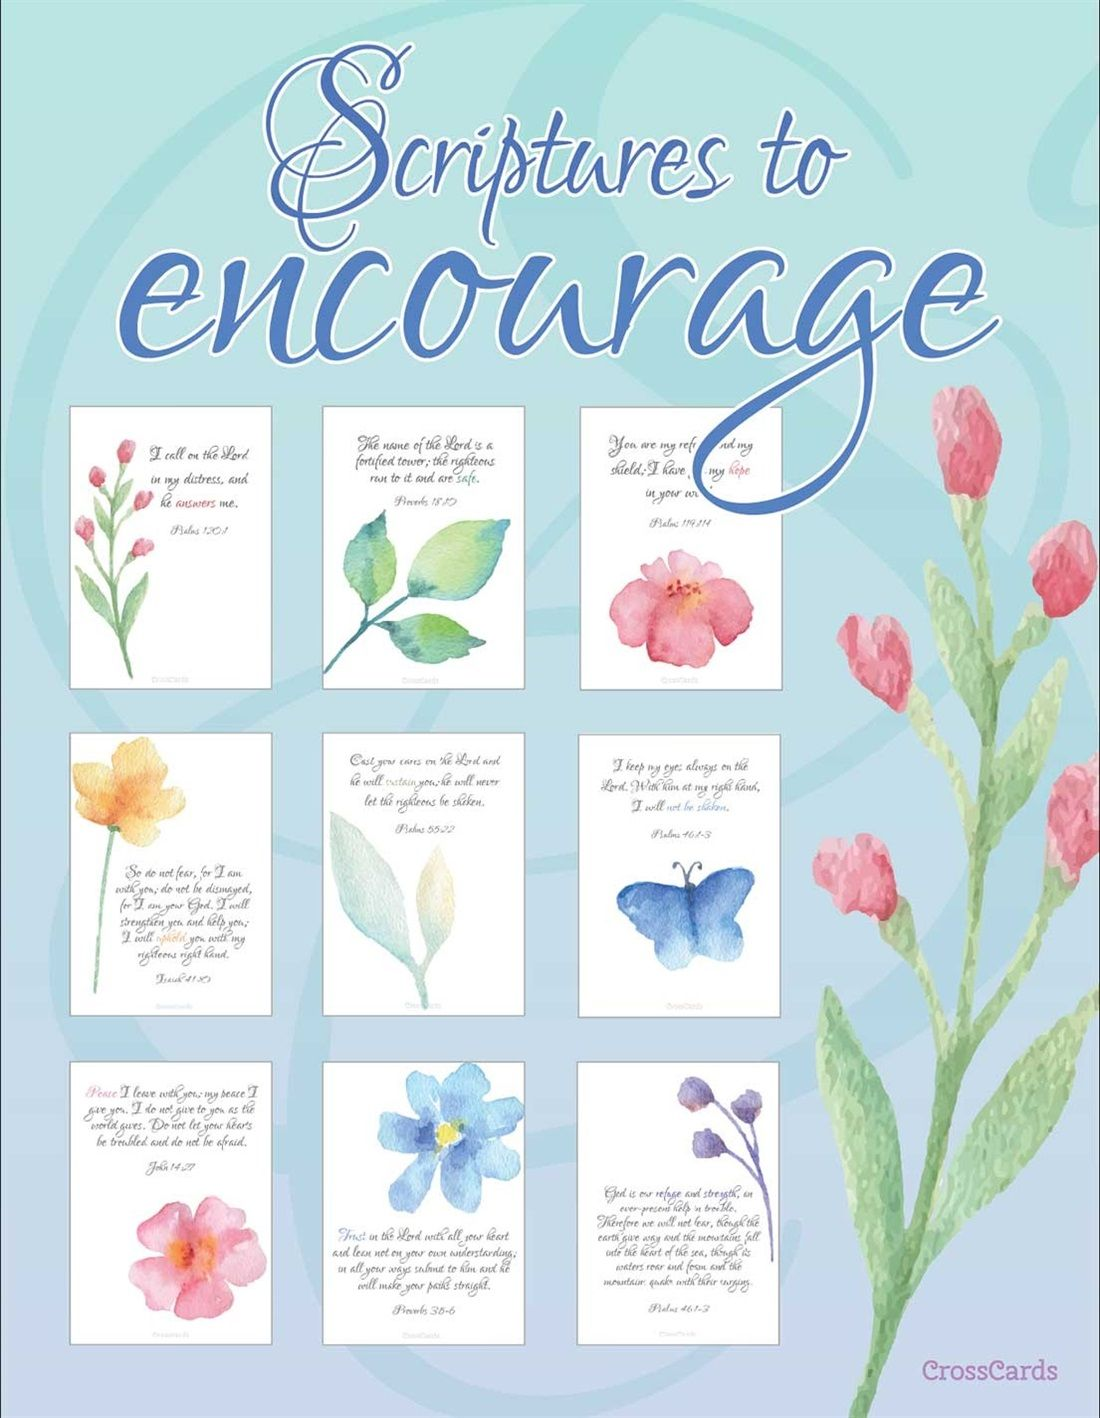 132 best crosscards images on pinterest ecards online bible 132 best crosscards images on pinterest ecards online bible scriptures and scripture cards kristyandbryce Gallery